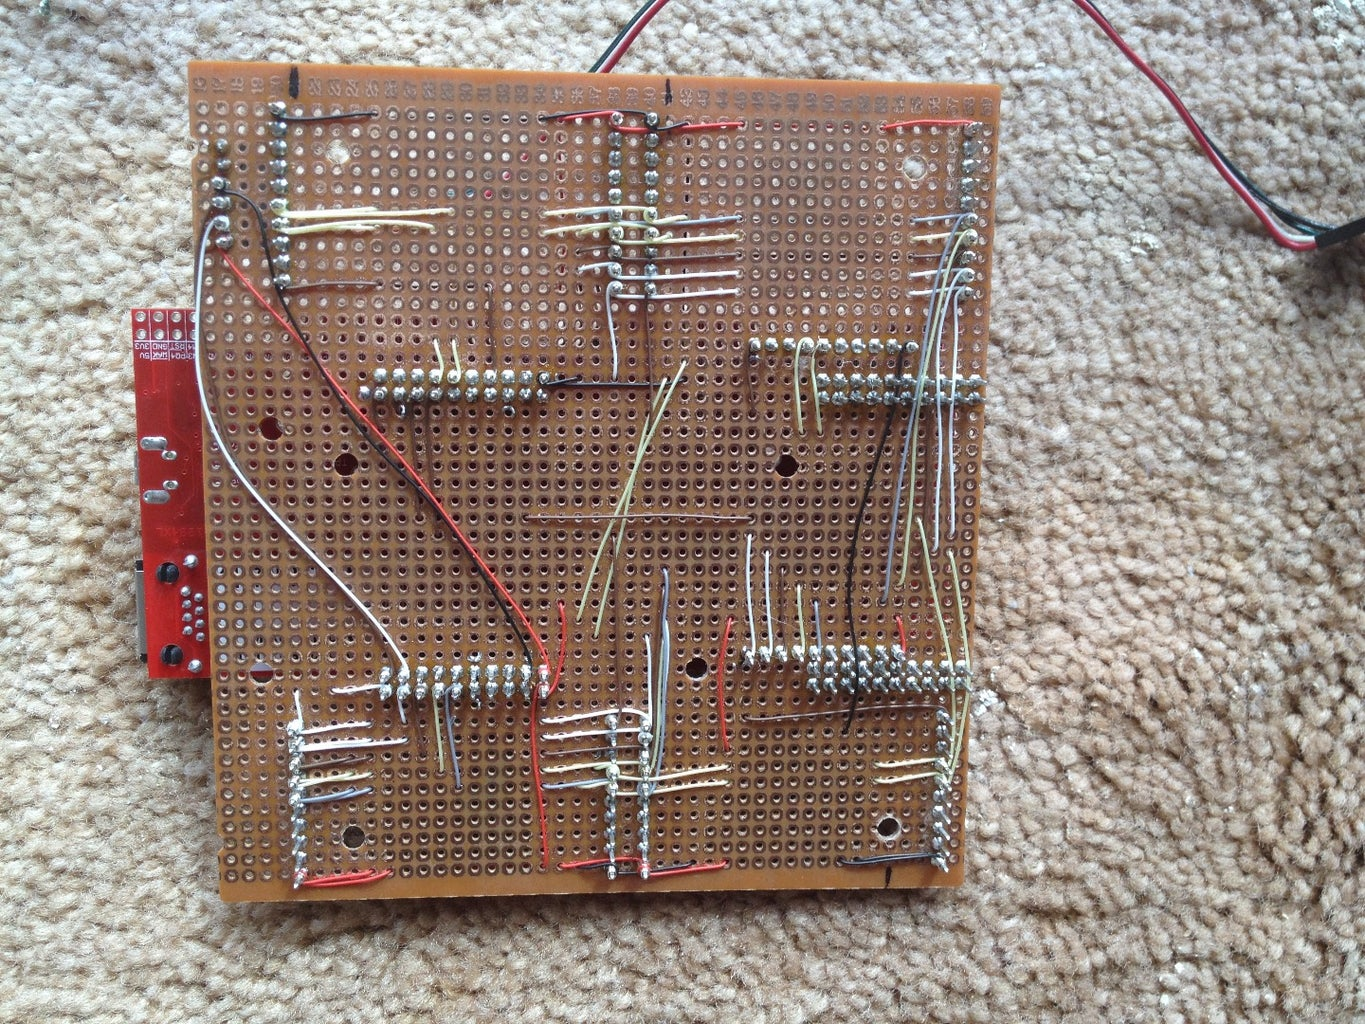 The Backplane Carrier Board